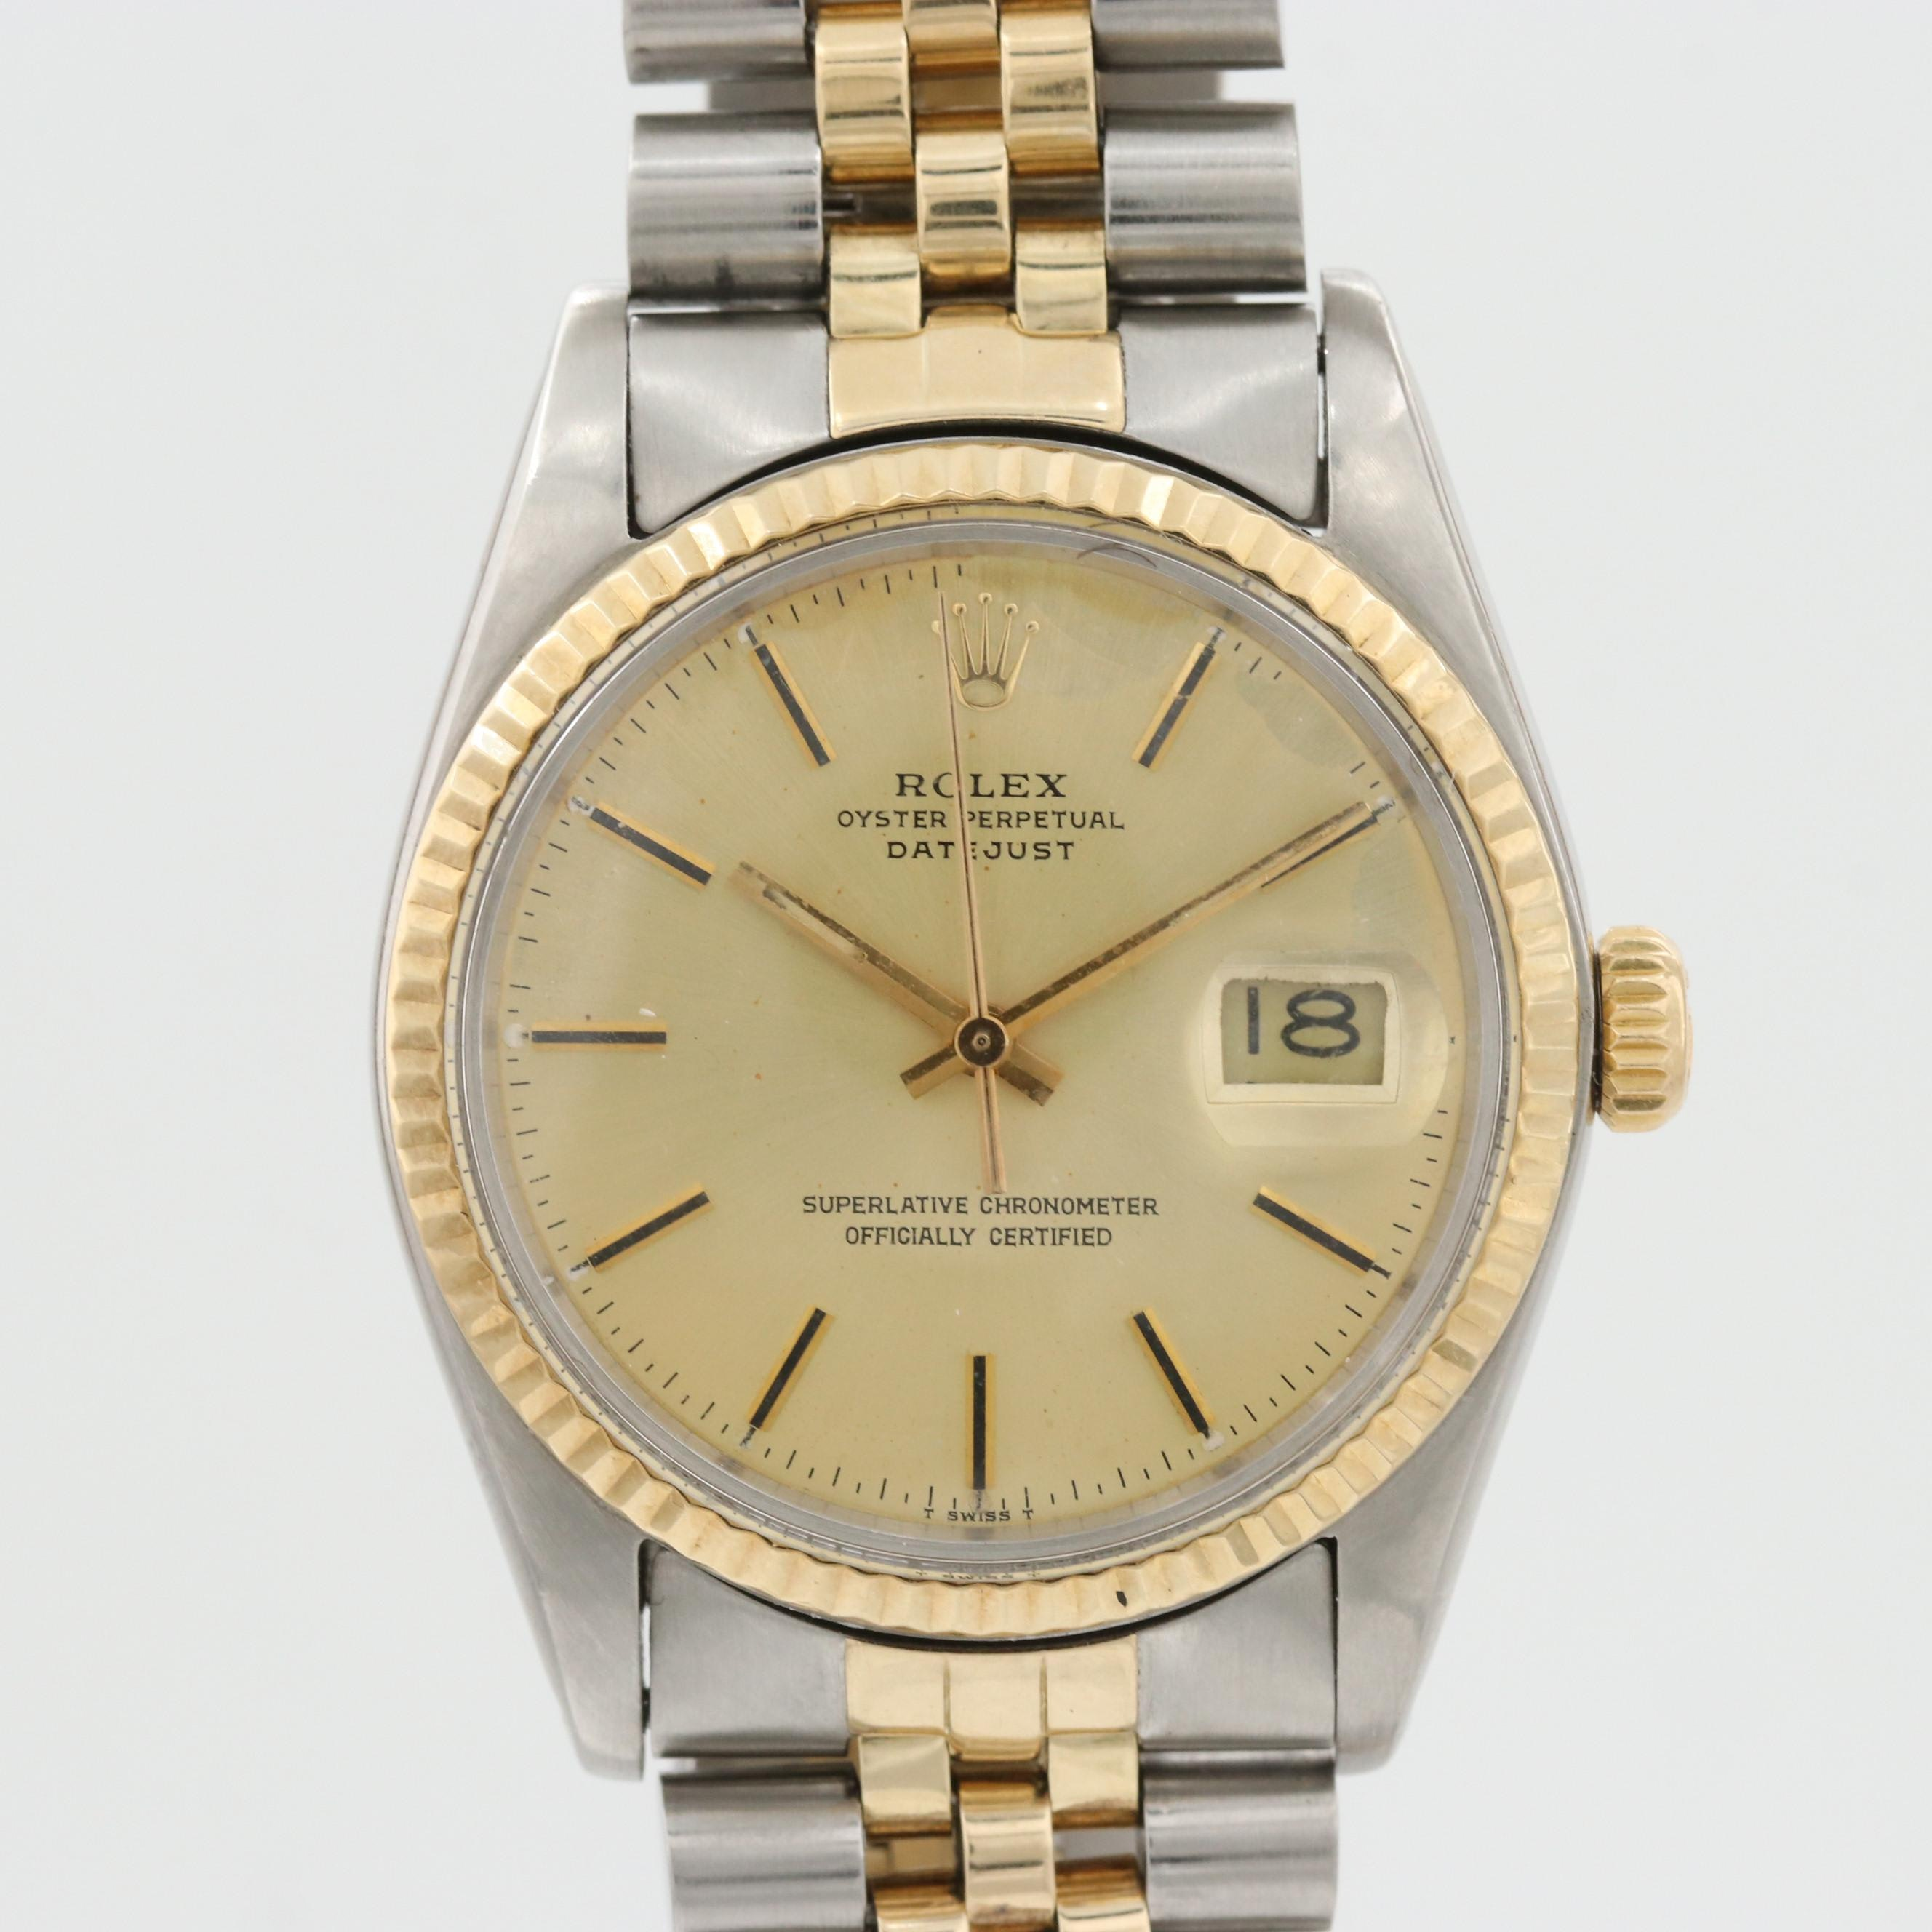 Vintage Rolex Datejust Stainless Steel and 14K Yellow Gold Wristwatch, 1978